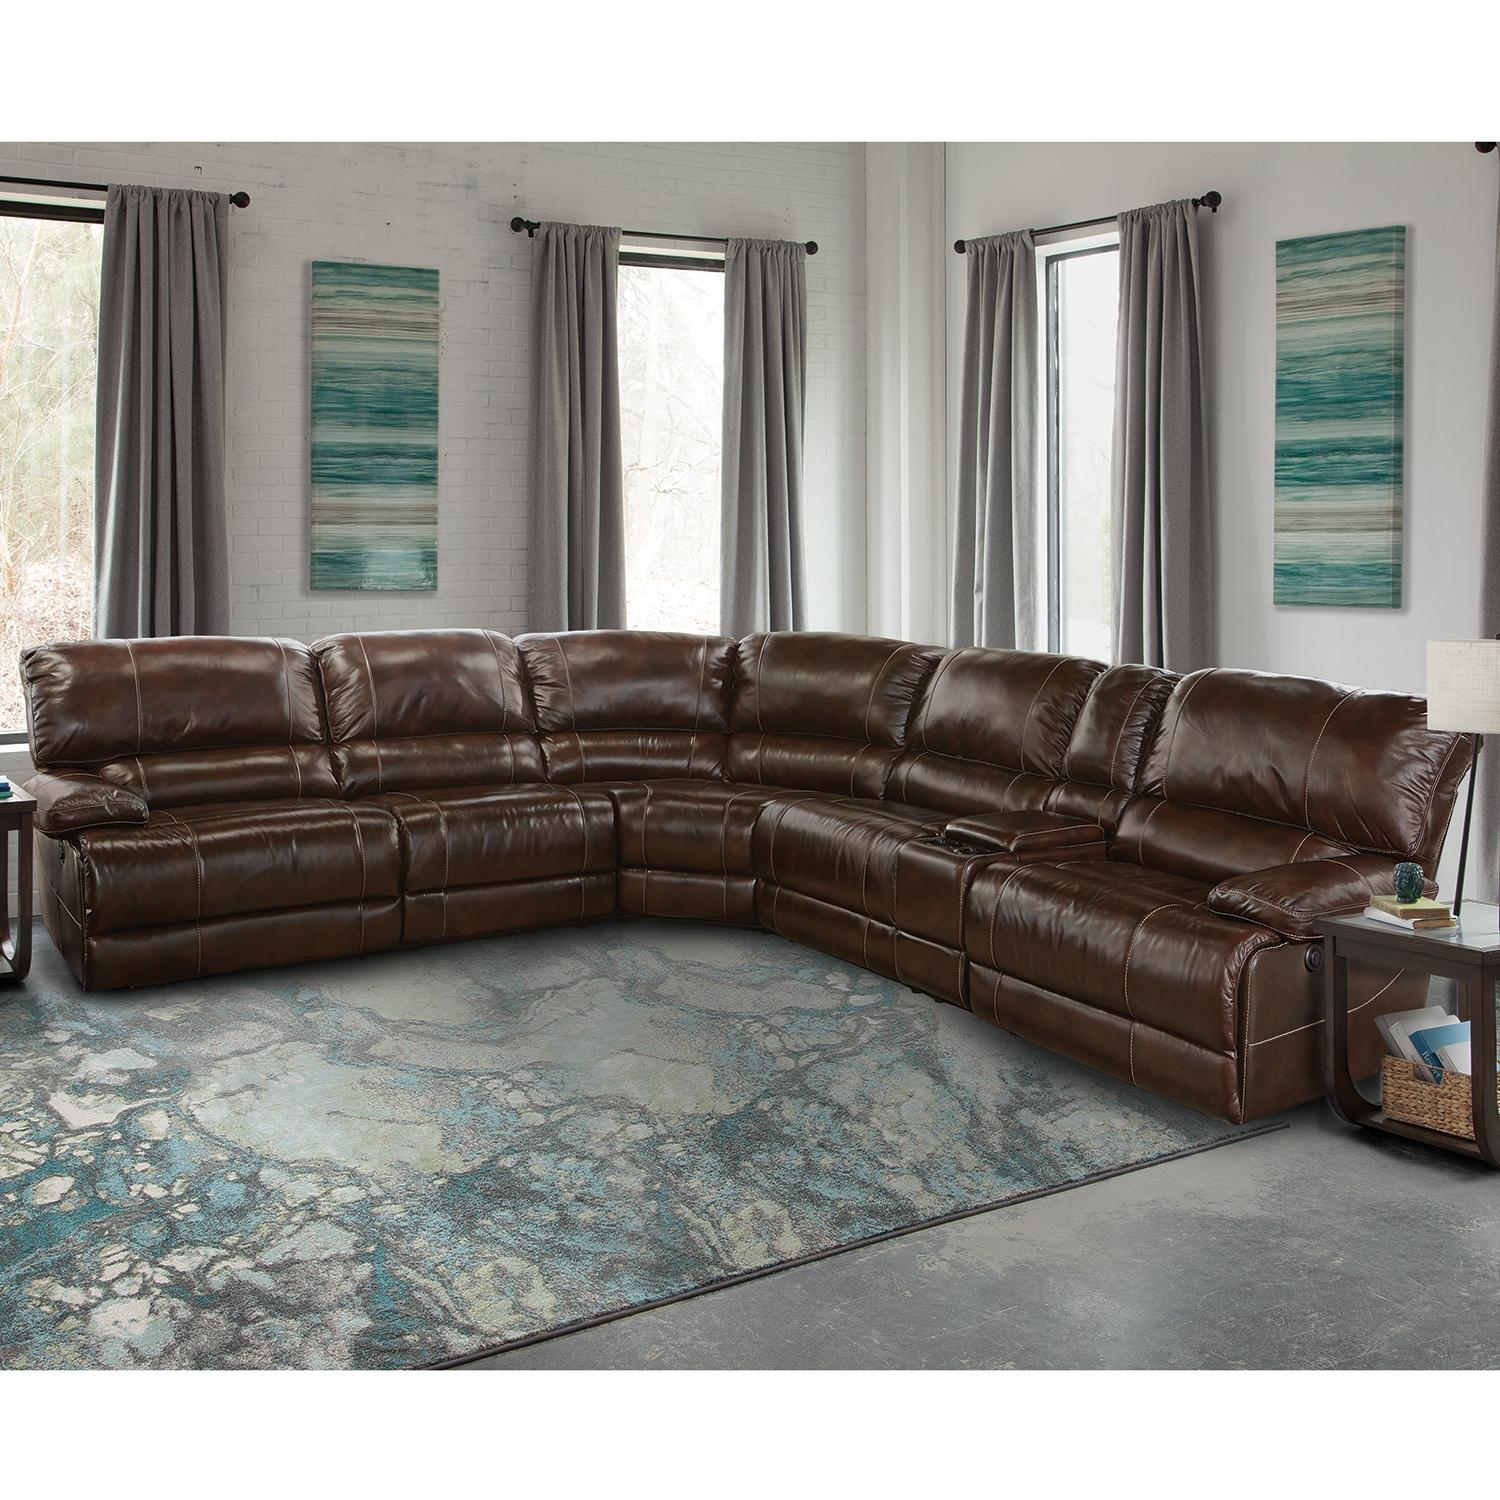 Stunning 6 Piece Leather Sectional Sofa 68 For Your Sectional Pertaining To Leather Sectional Sofas Toronto (View 10 of 20)